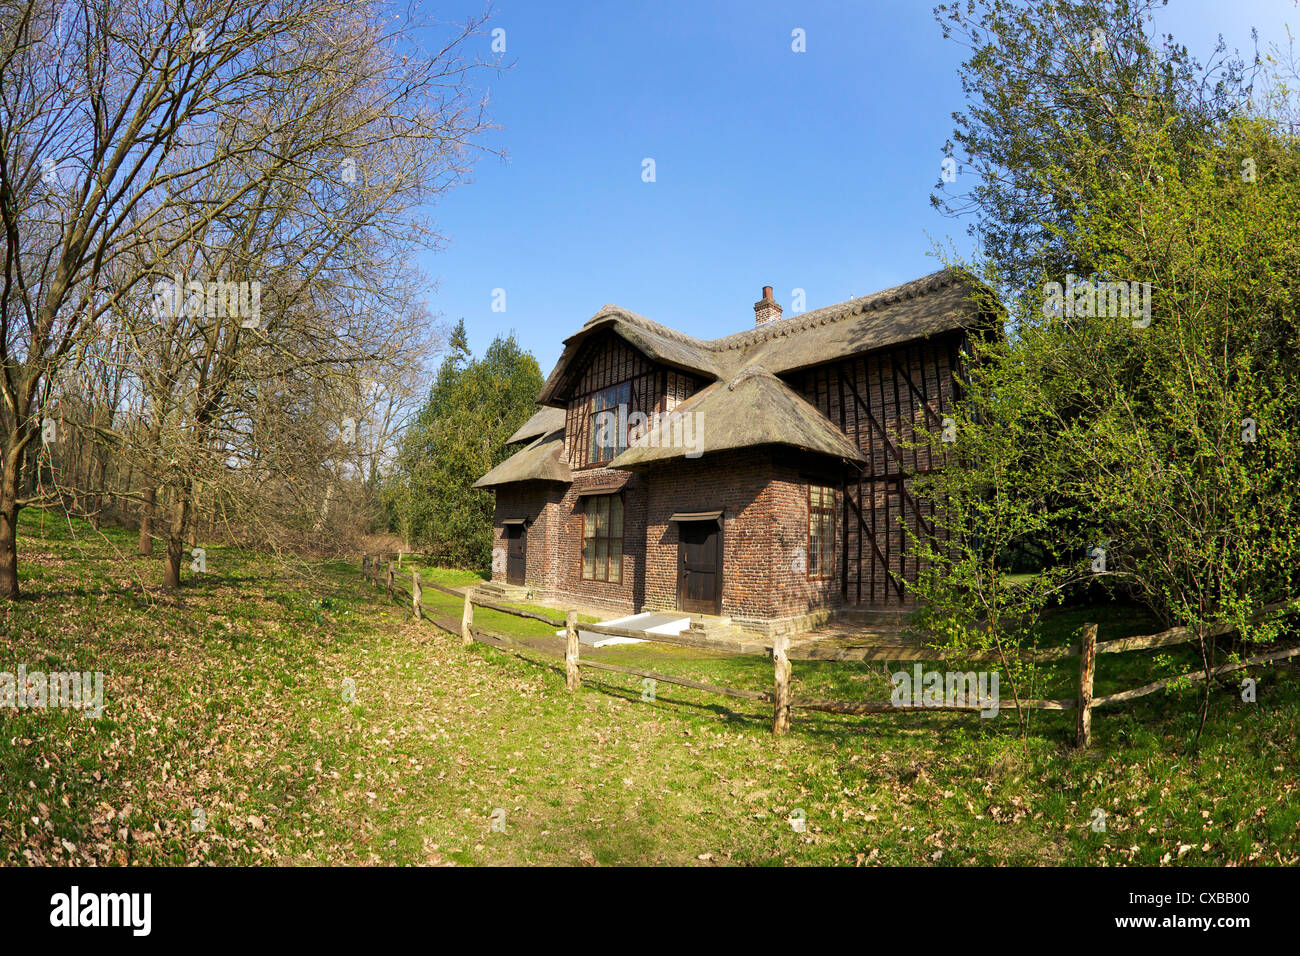 Queen Charlottes Cottage, Royal Botanic Gardens, Kew, UNESCO World Heritage Site, London, England, United Kingdom, - Stock Image